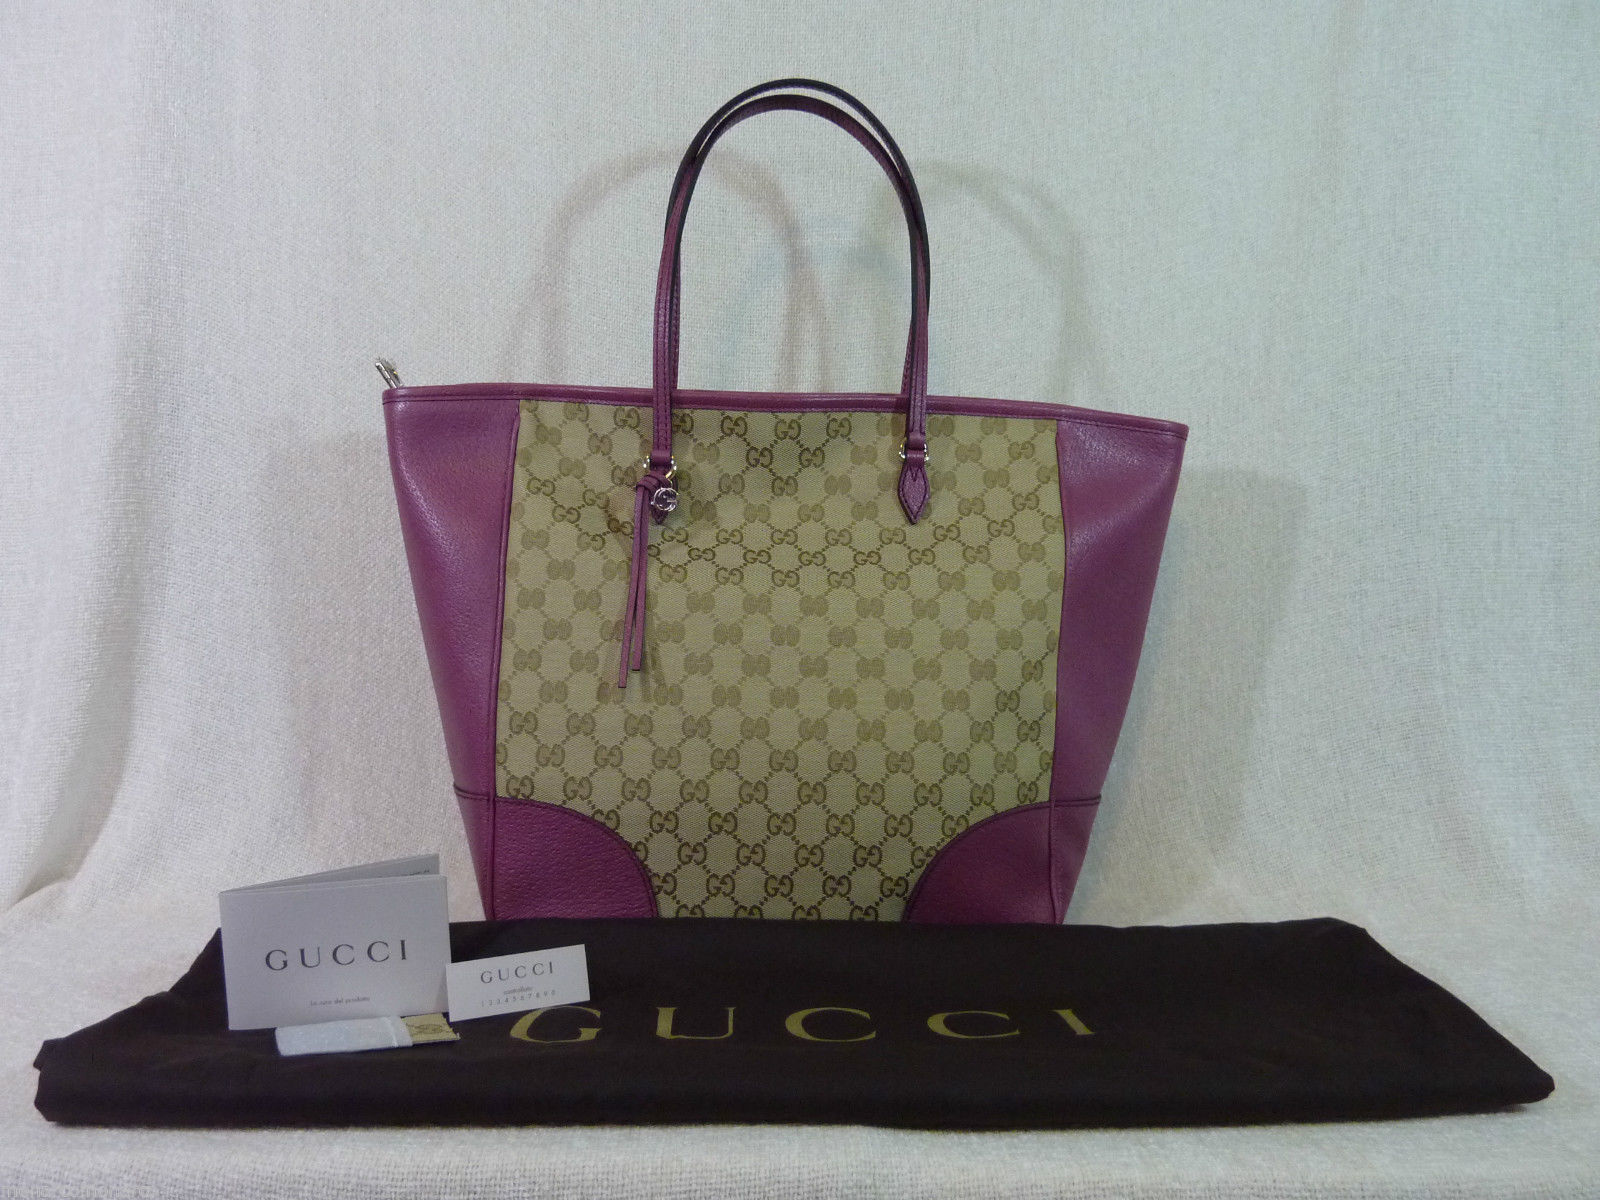 AUTH NWOT GUCCI Beige/Ebony/Dusty Rose Canvas/Leather Bree GG Tote image 5